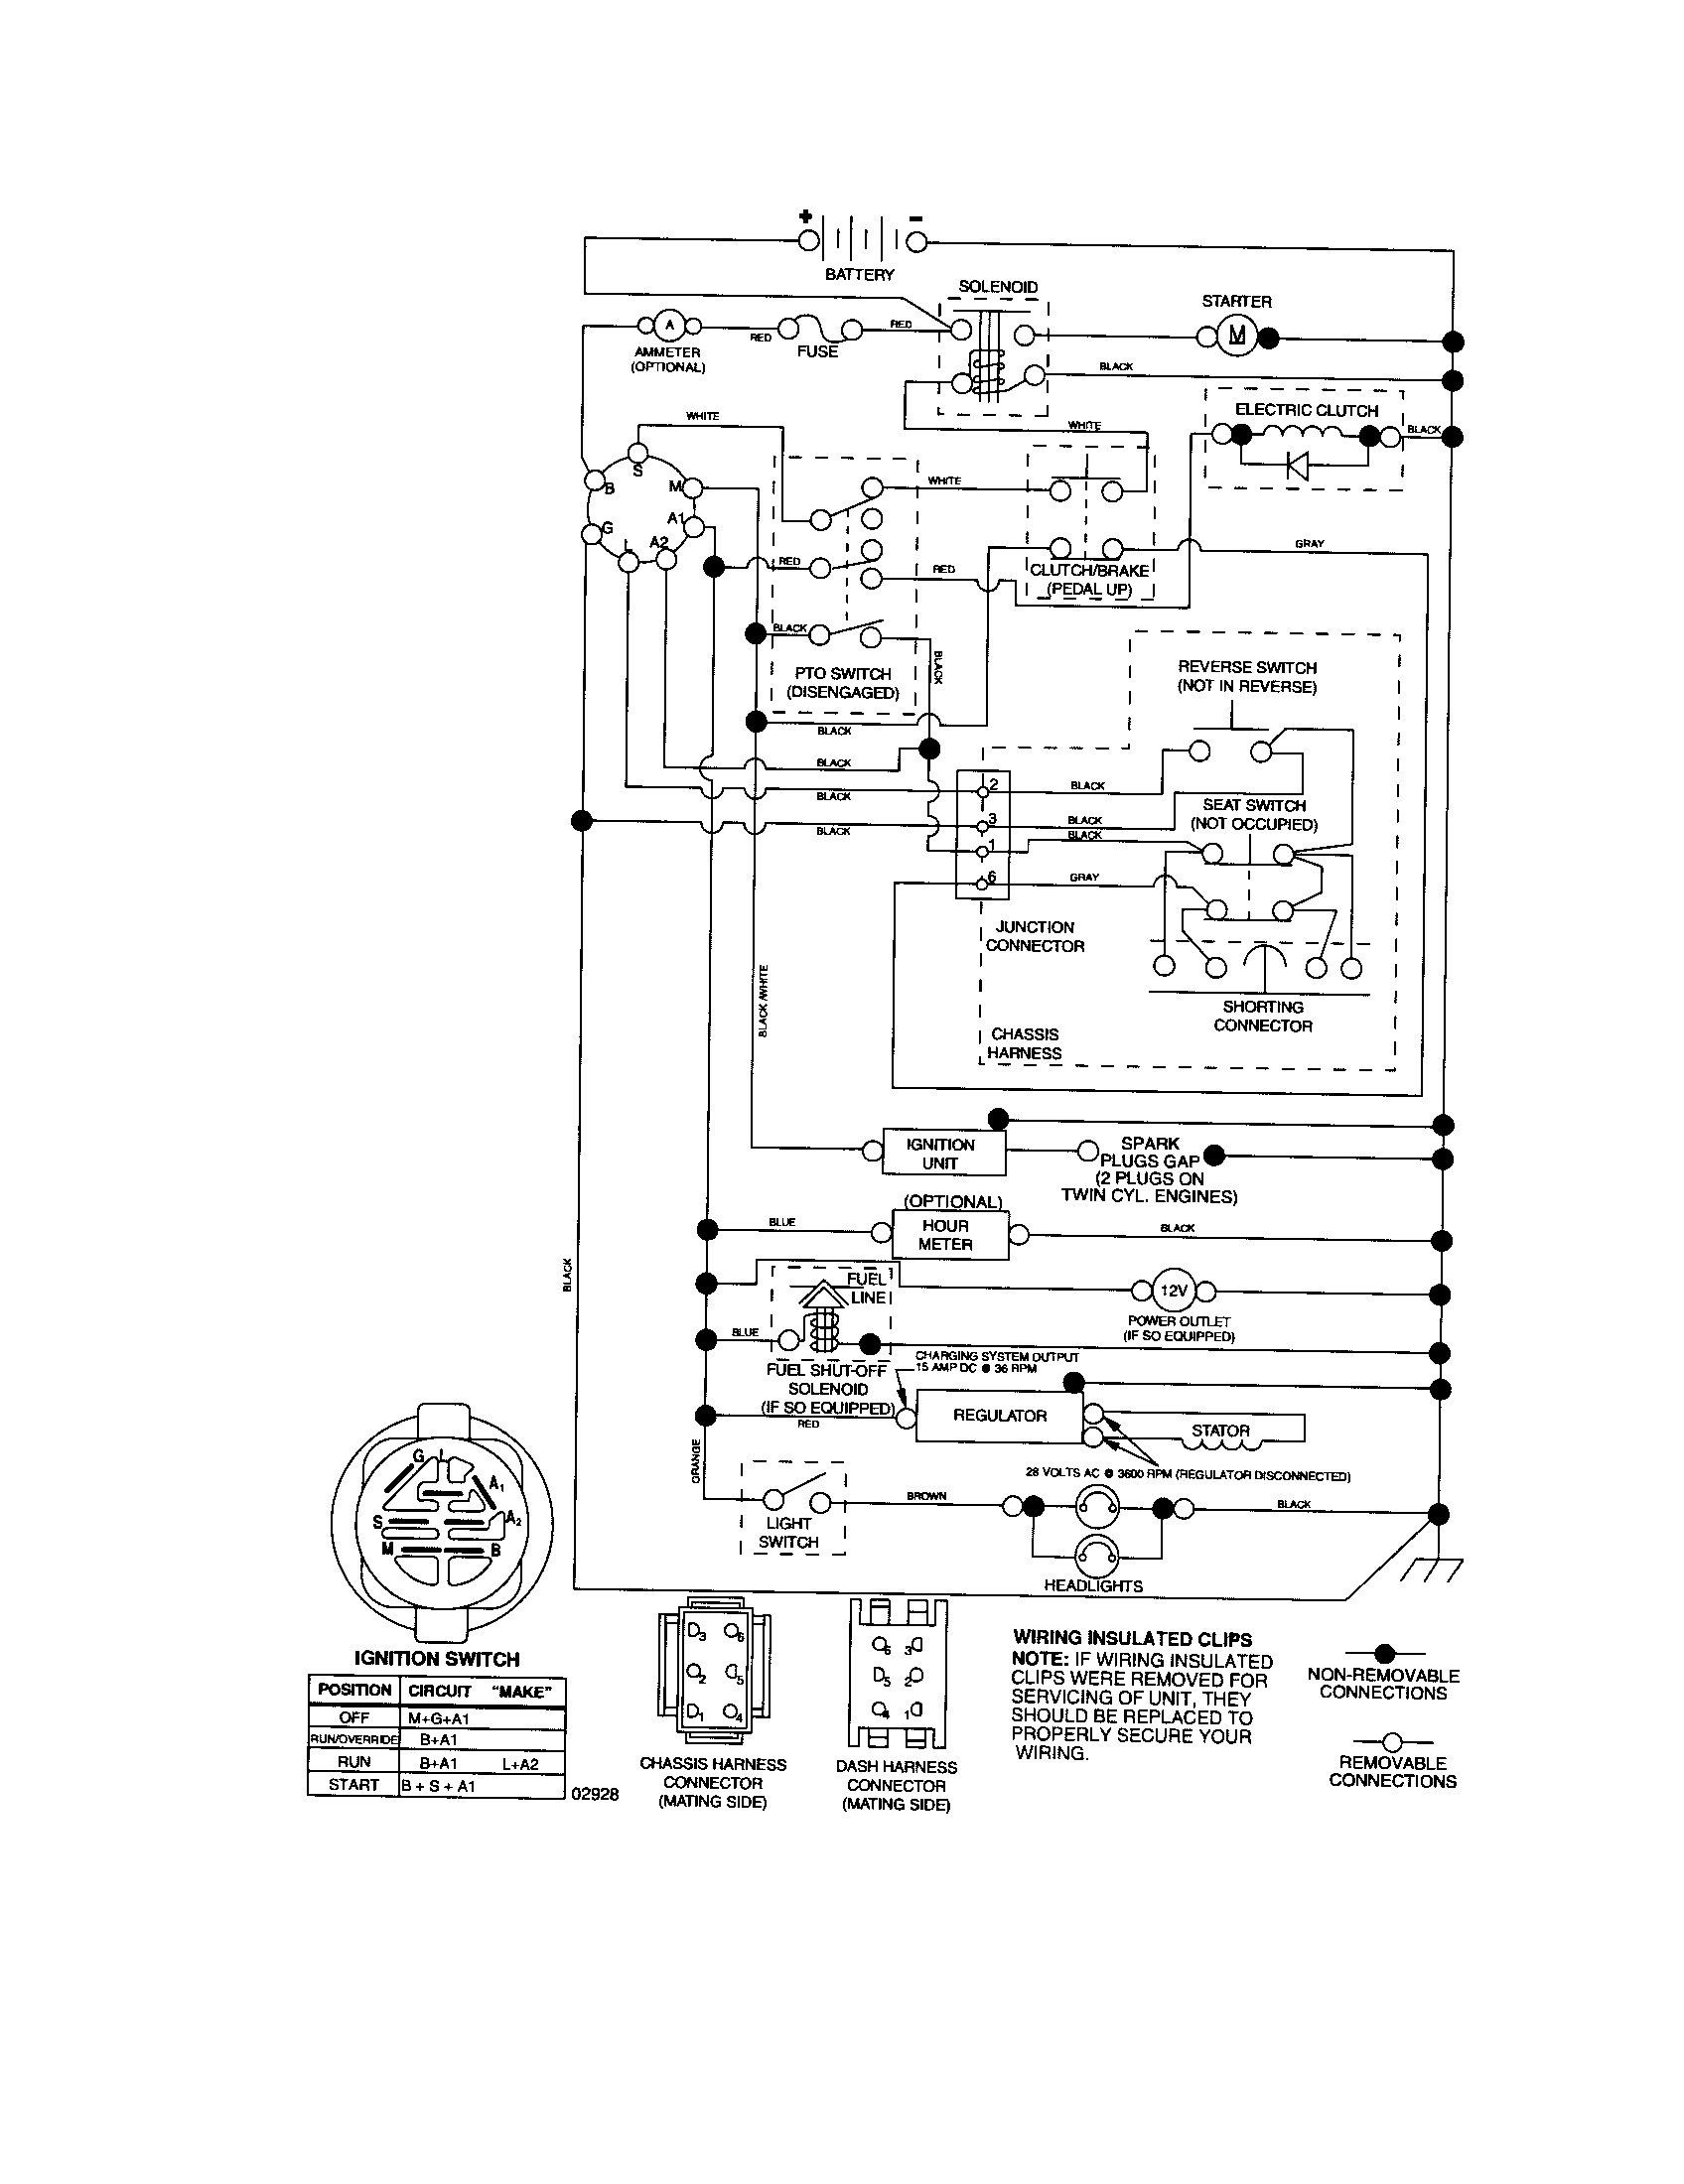 hight resolution of model wiring craftsman diagram tractor 917272674 wiring diagrams rear wiring diagram craftsman 1000 tractor